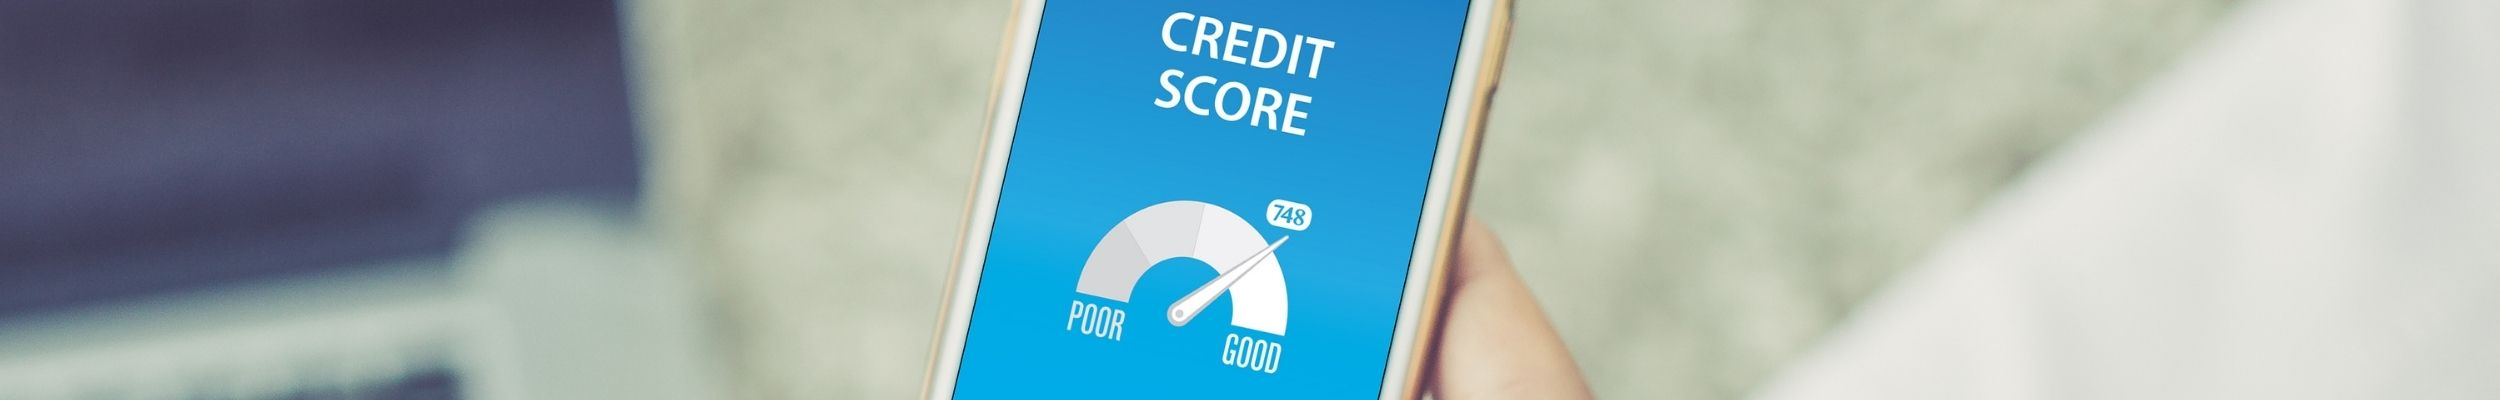 Checking Credit Score